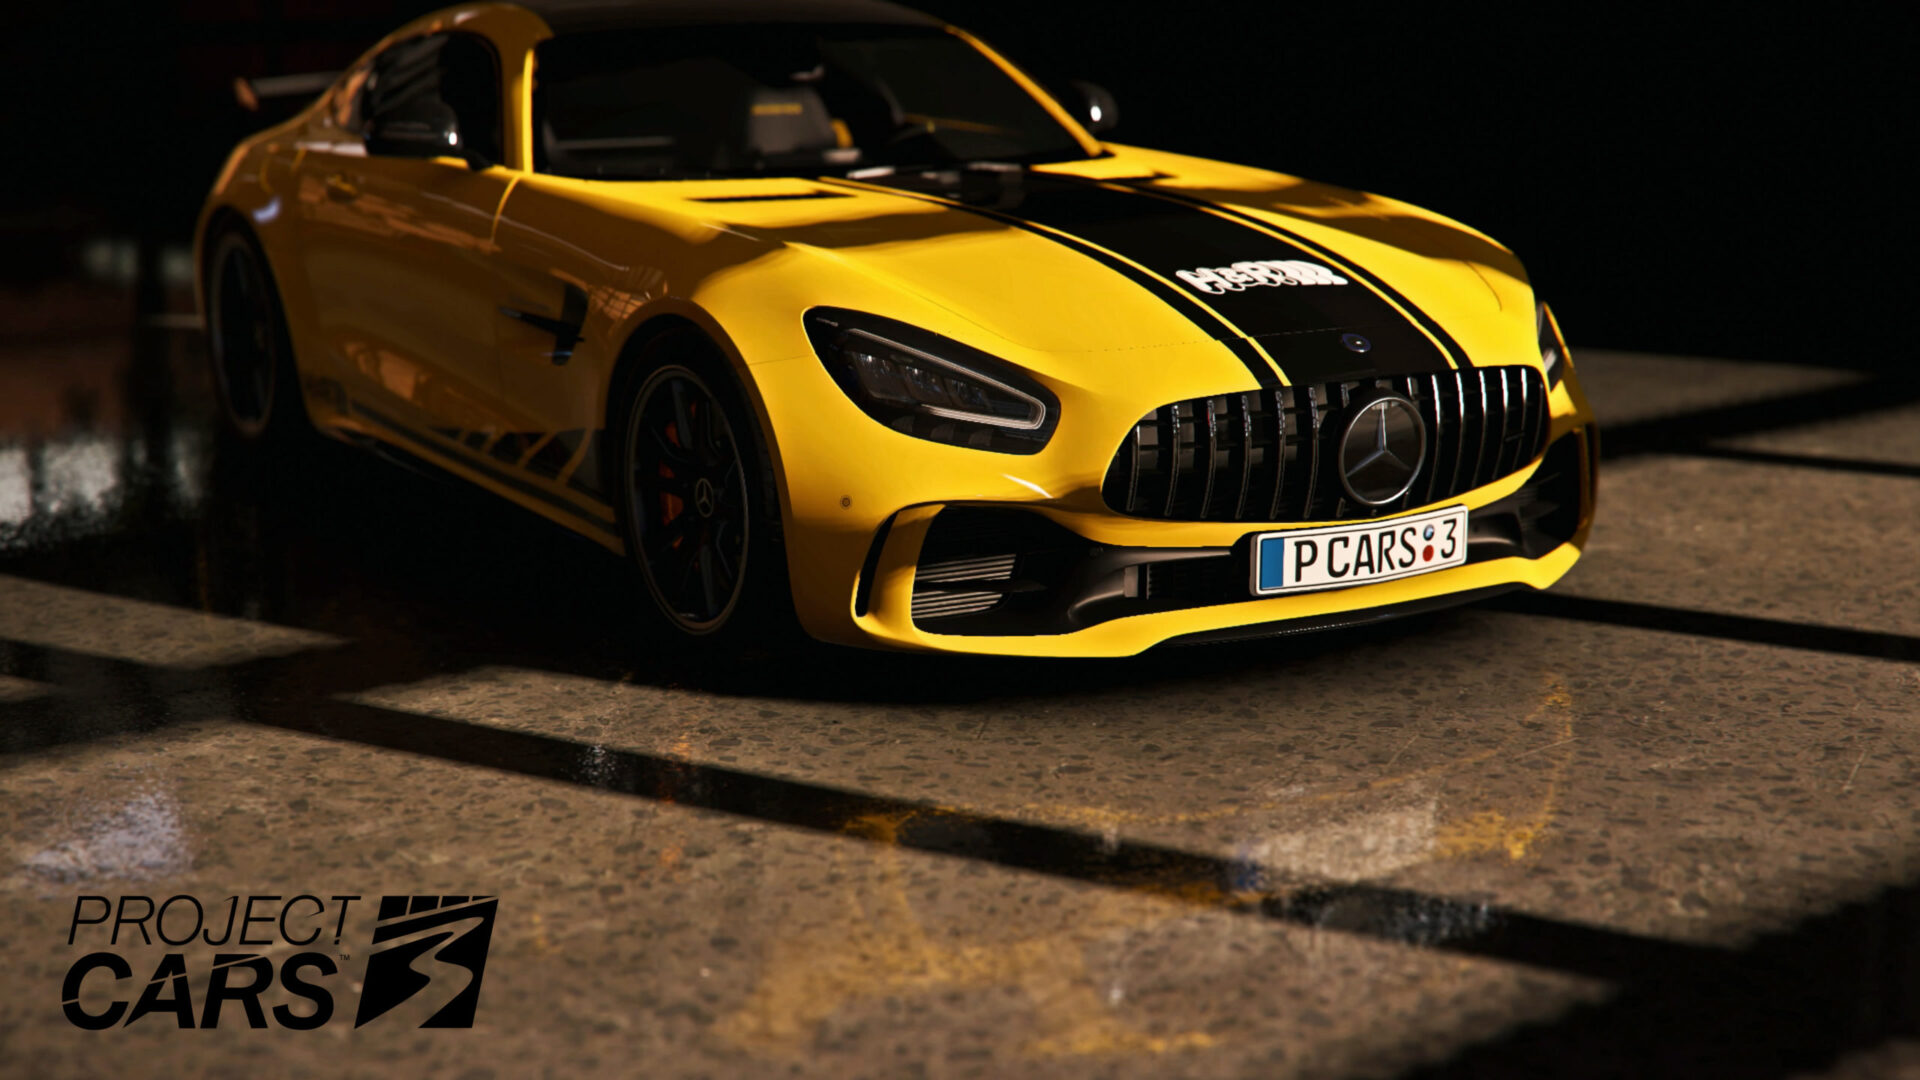 project cars 3 july 2020 6